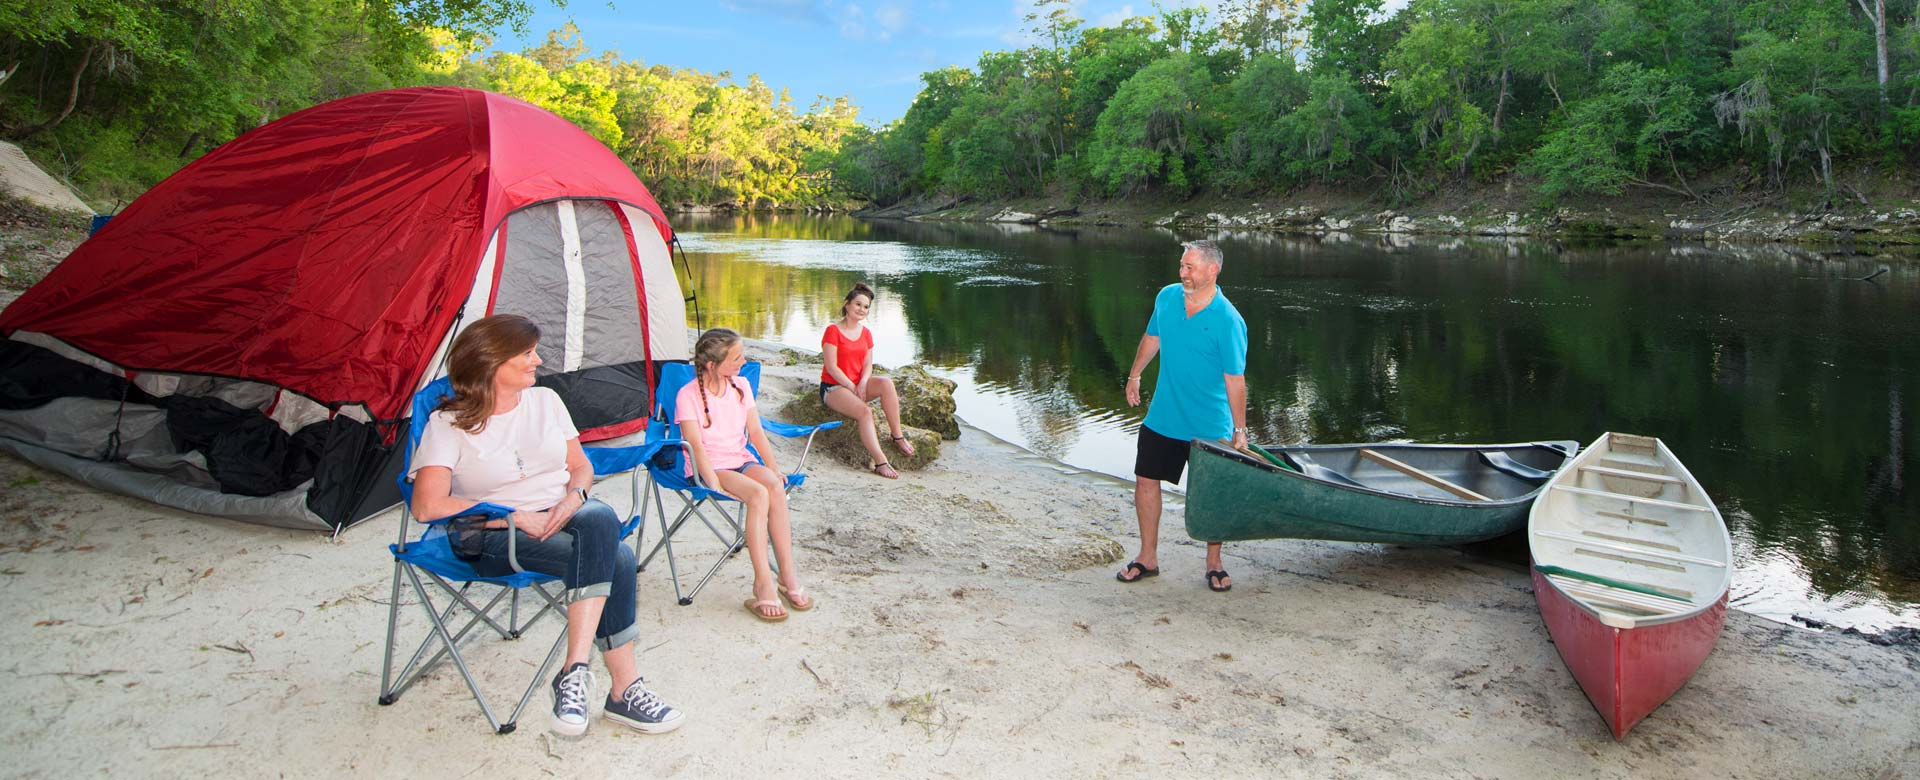 Family camping by water in daytime